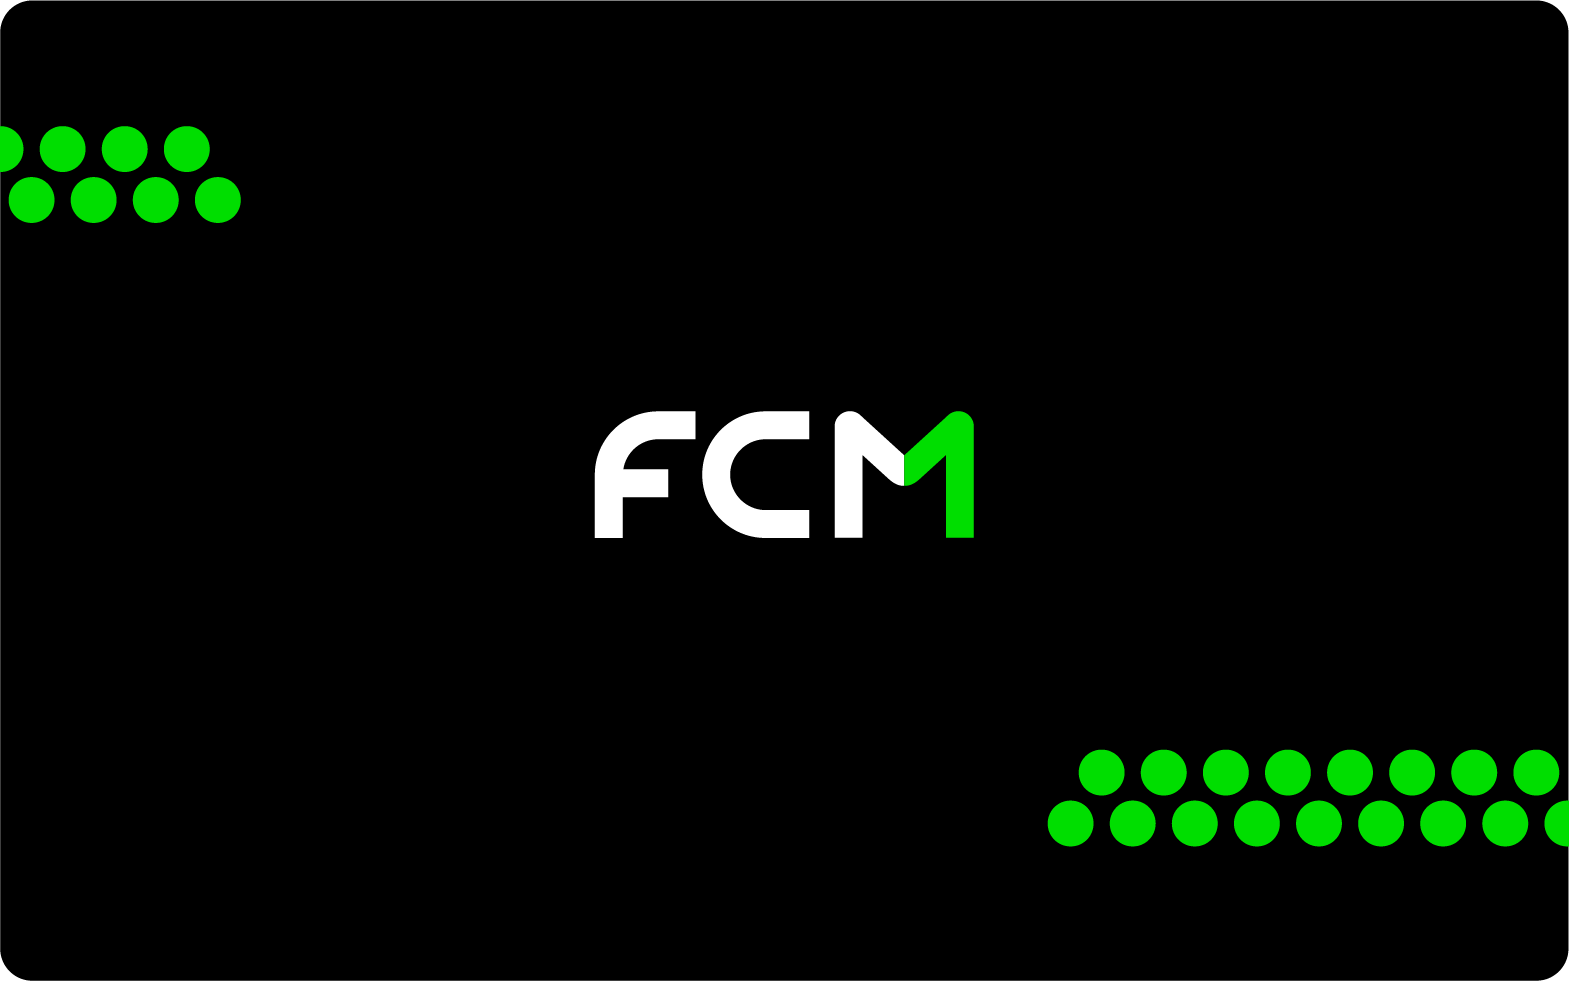 Meet FCM Meetings & Events, an international events agency that used Hopin for a client's automotive launch